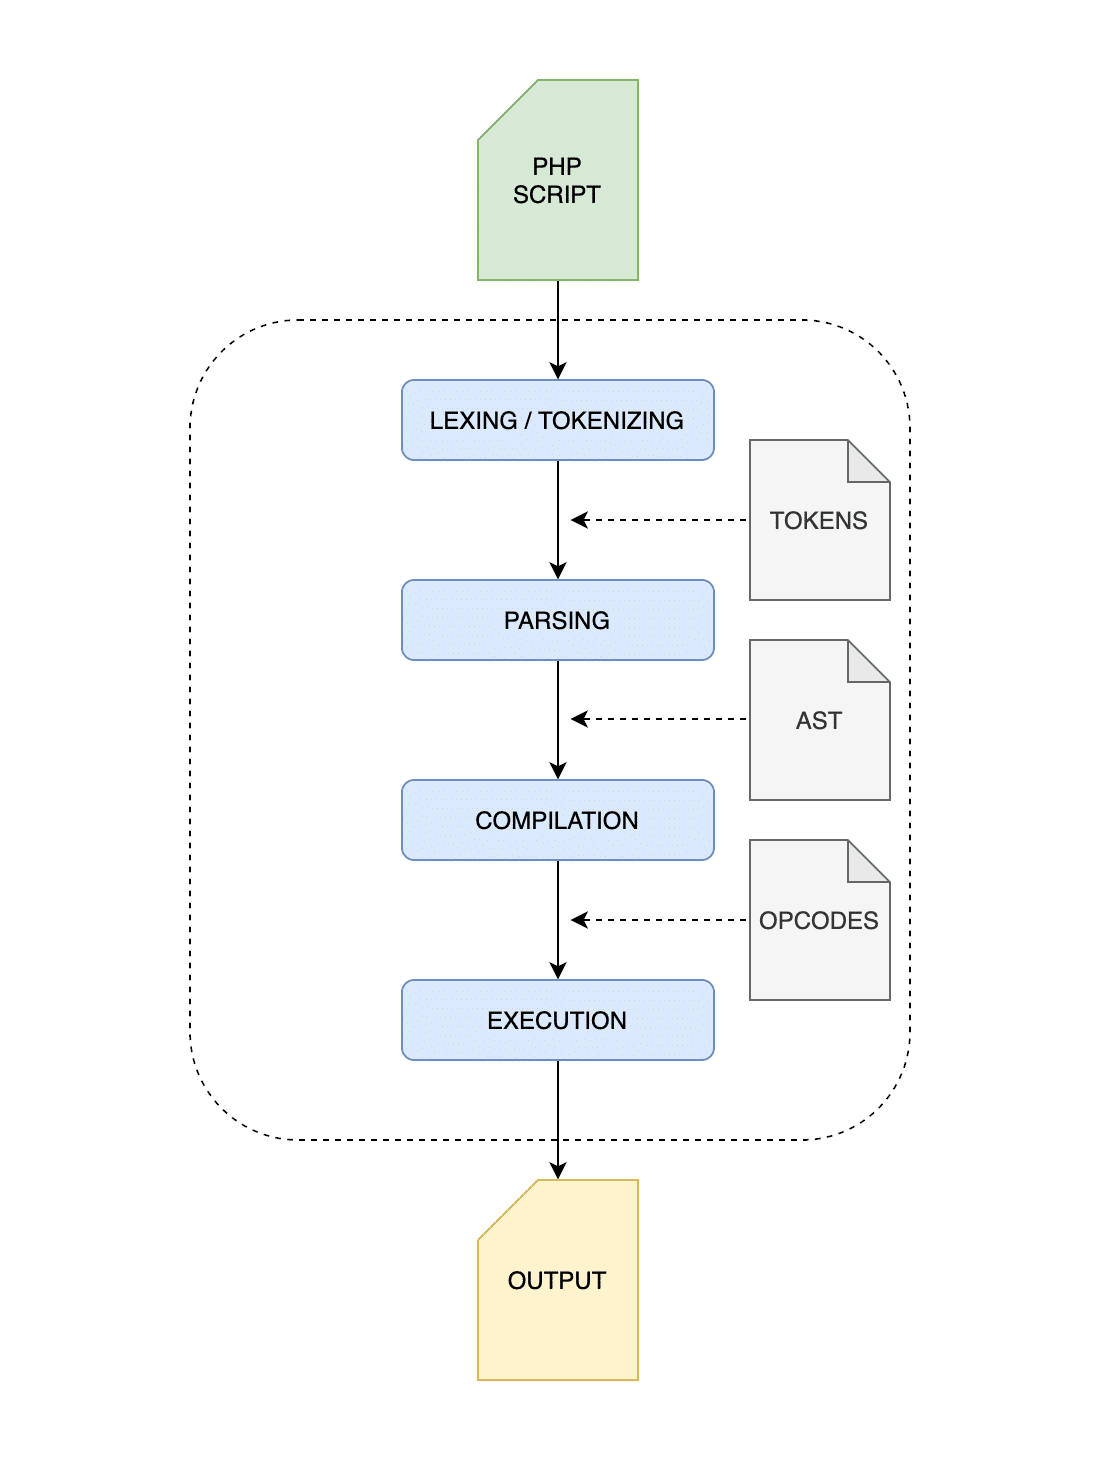 Basic PHP execution process